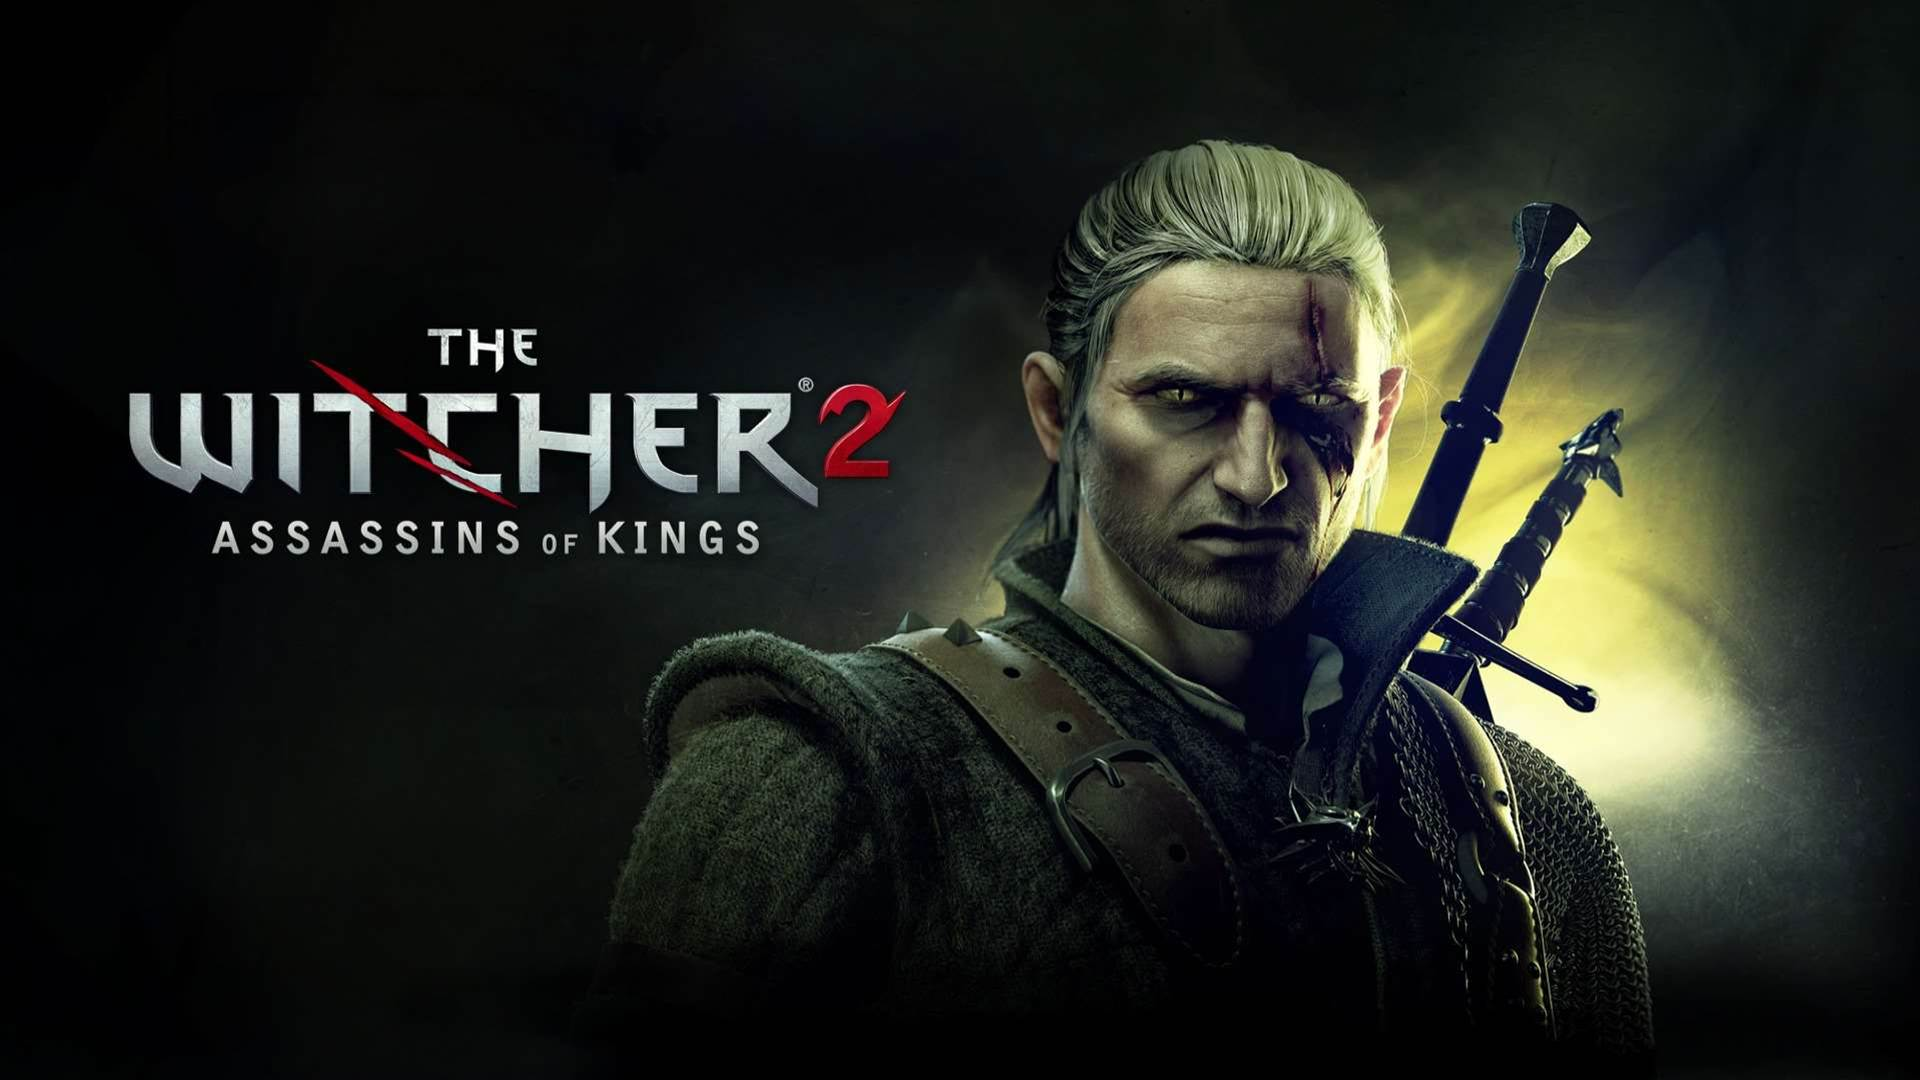 The Witcher 2 Enhanced Edition coming to Xbox, with AWESOME intro CGI